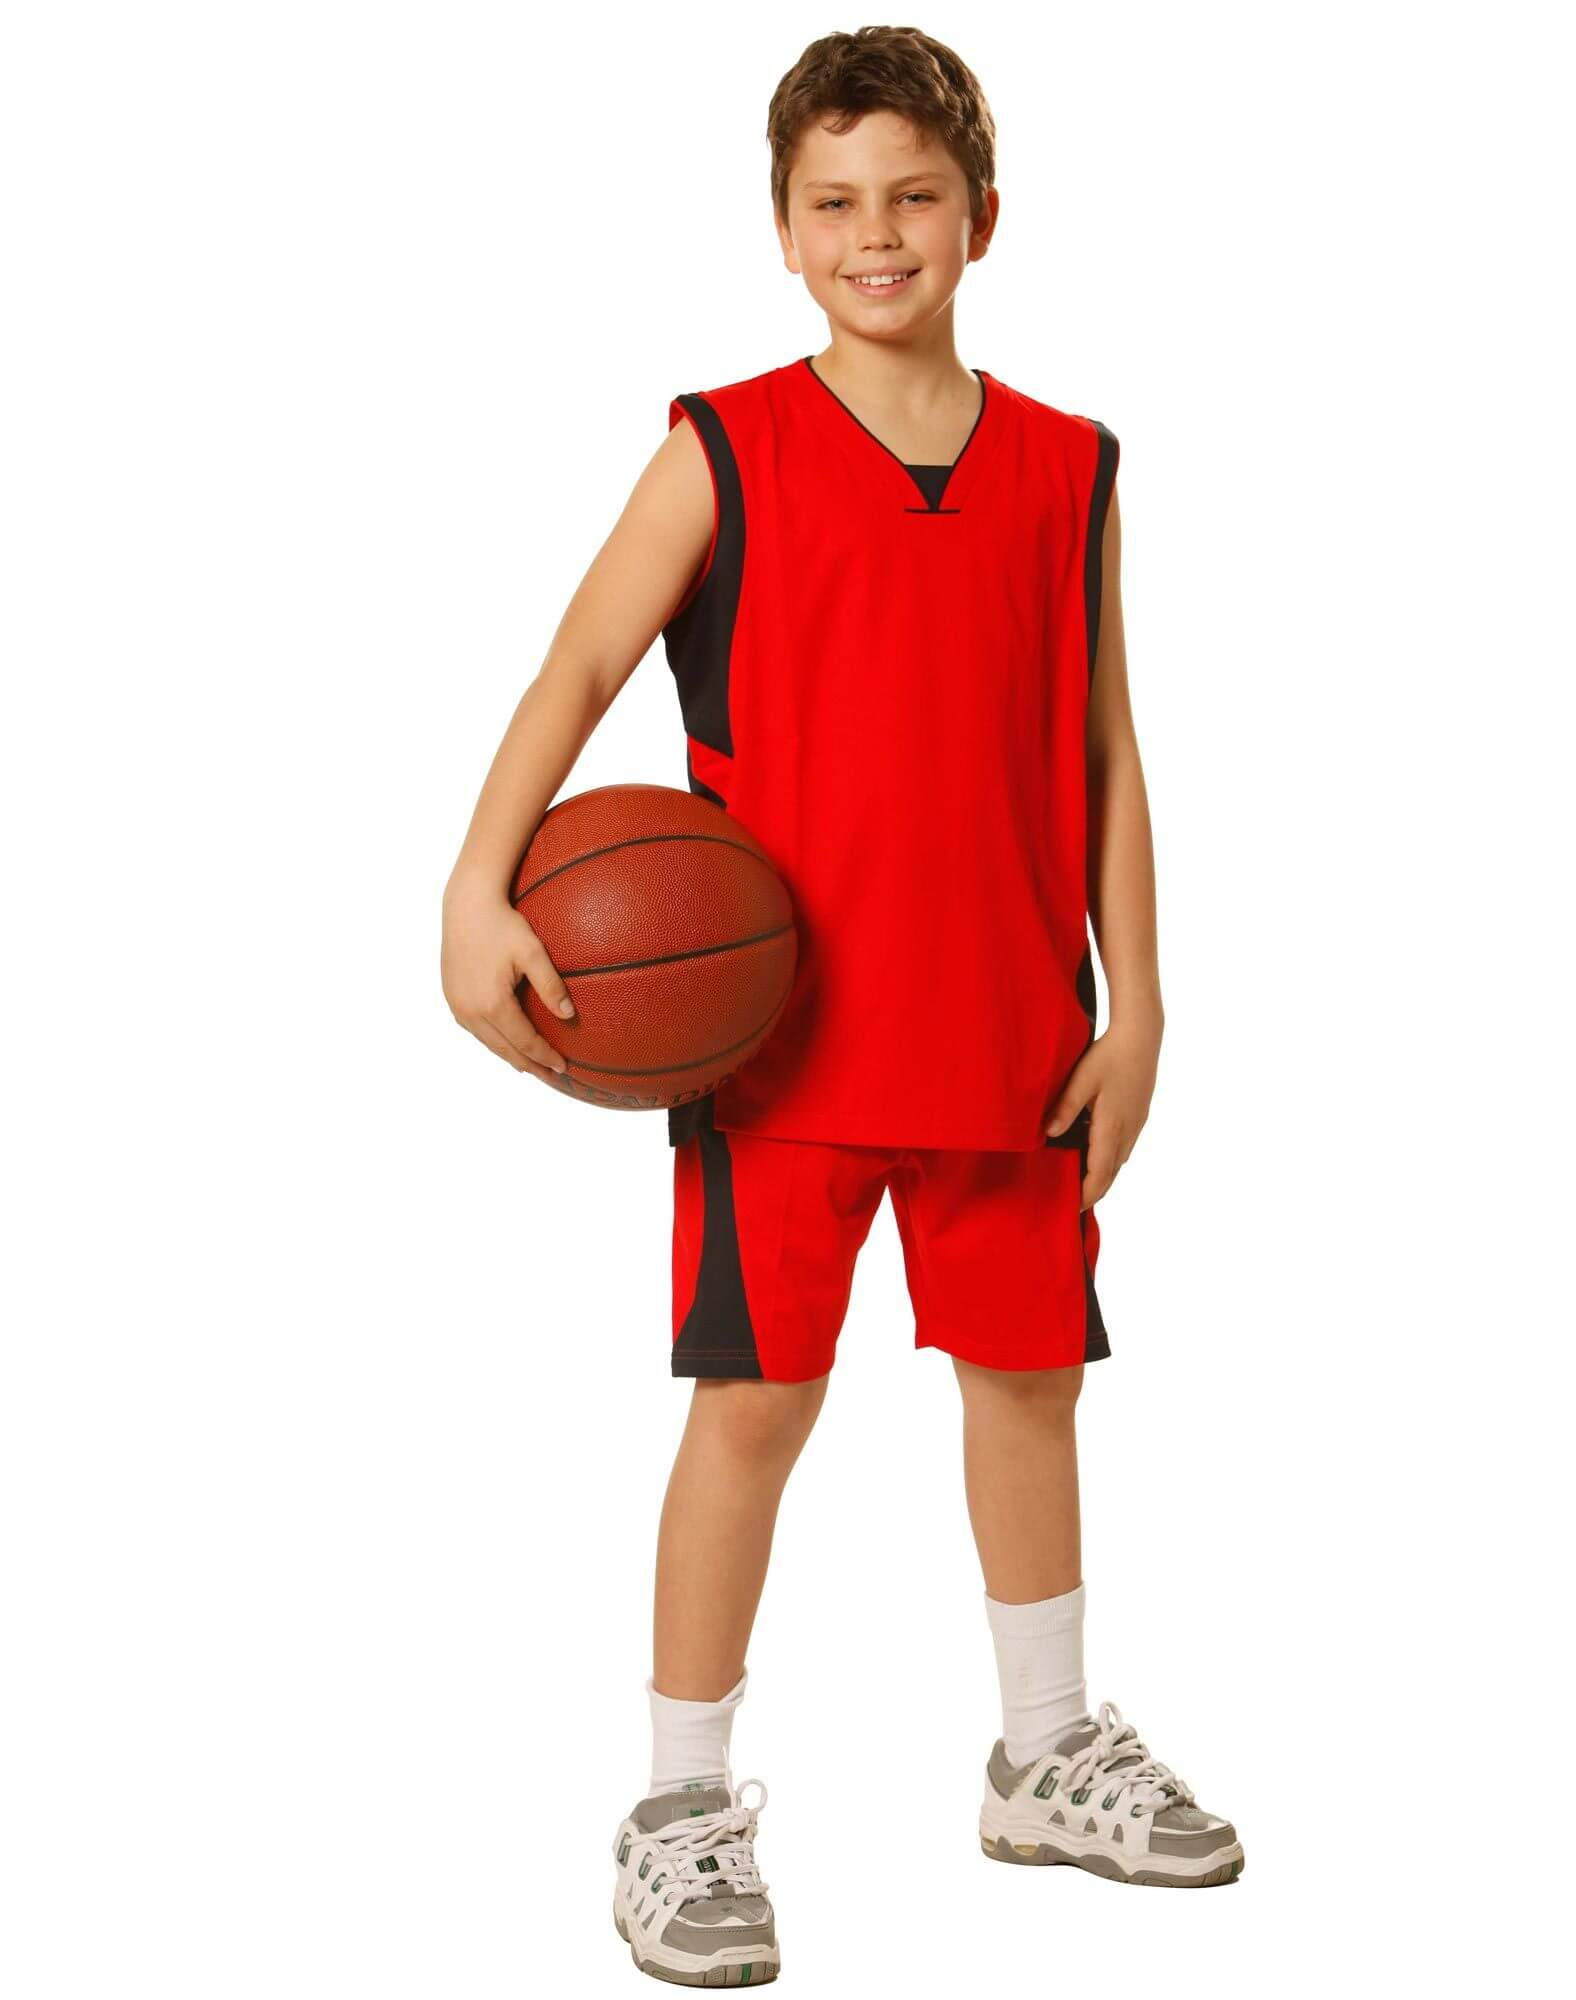 Kids Basketball Jerseys Manufacturers in Brazil